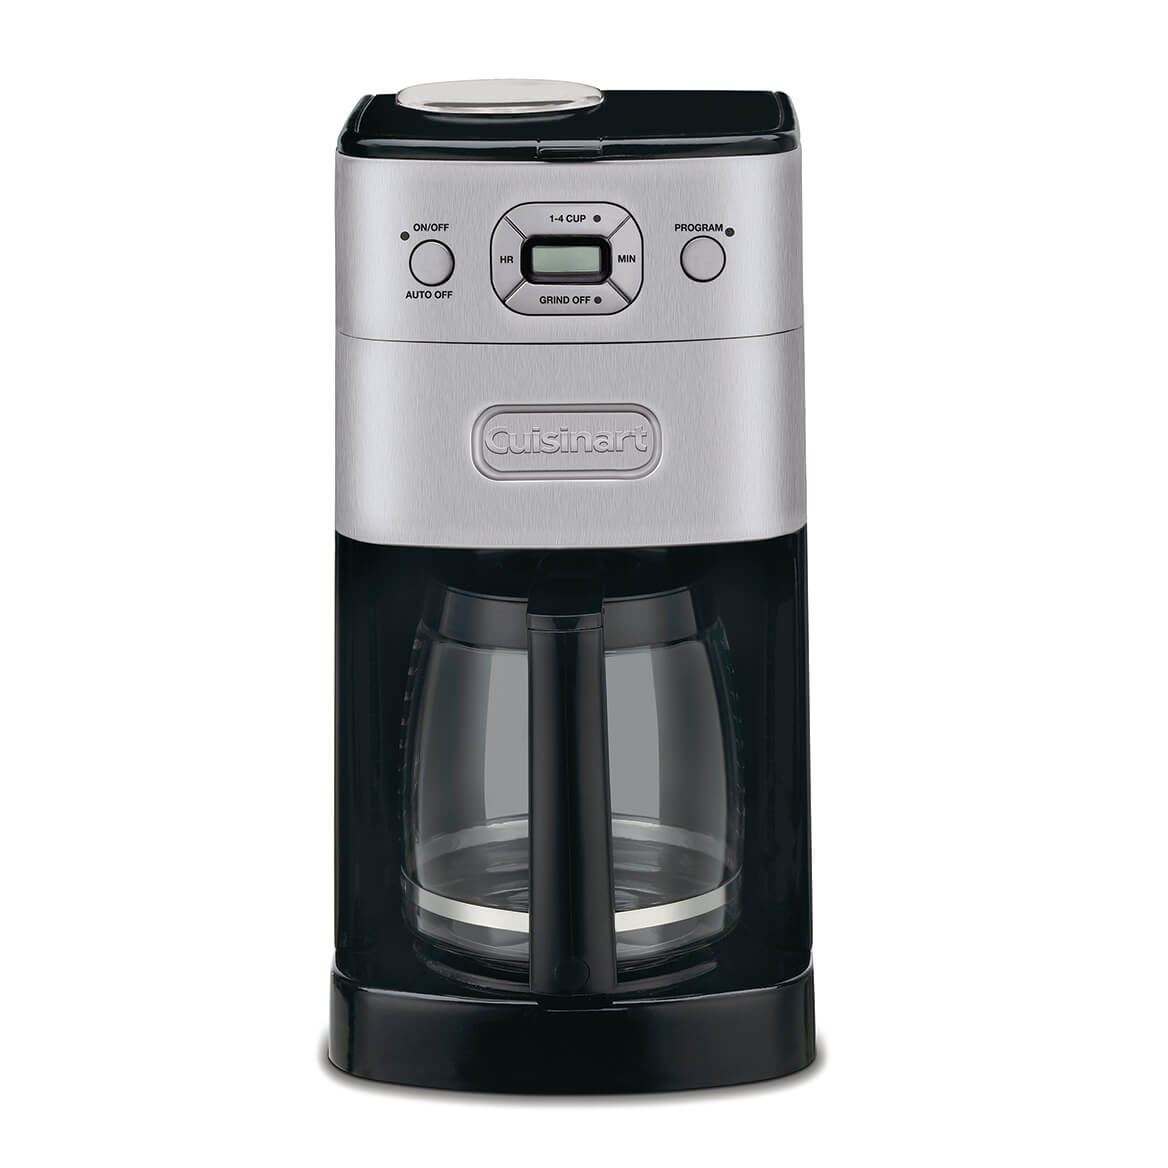 Cuisinart Grind & Brew™ 12 Cup Automatic Coffee Maker